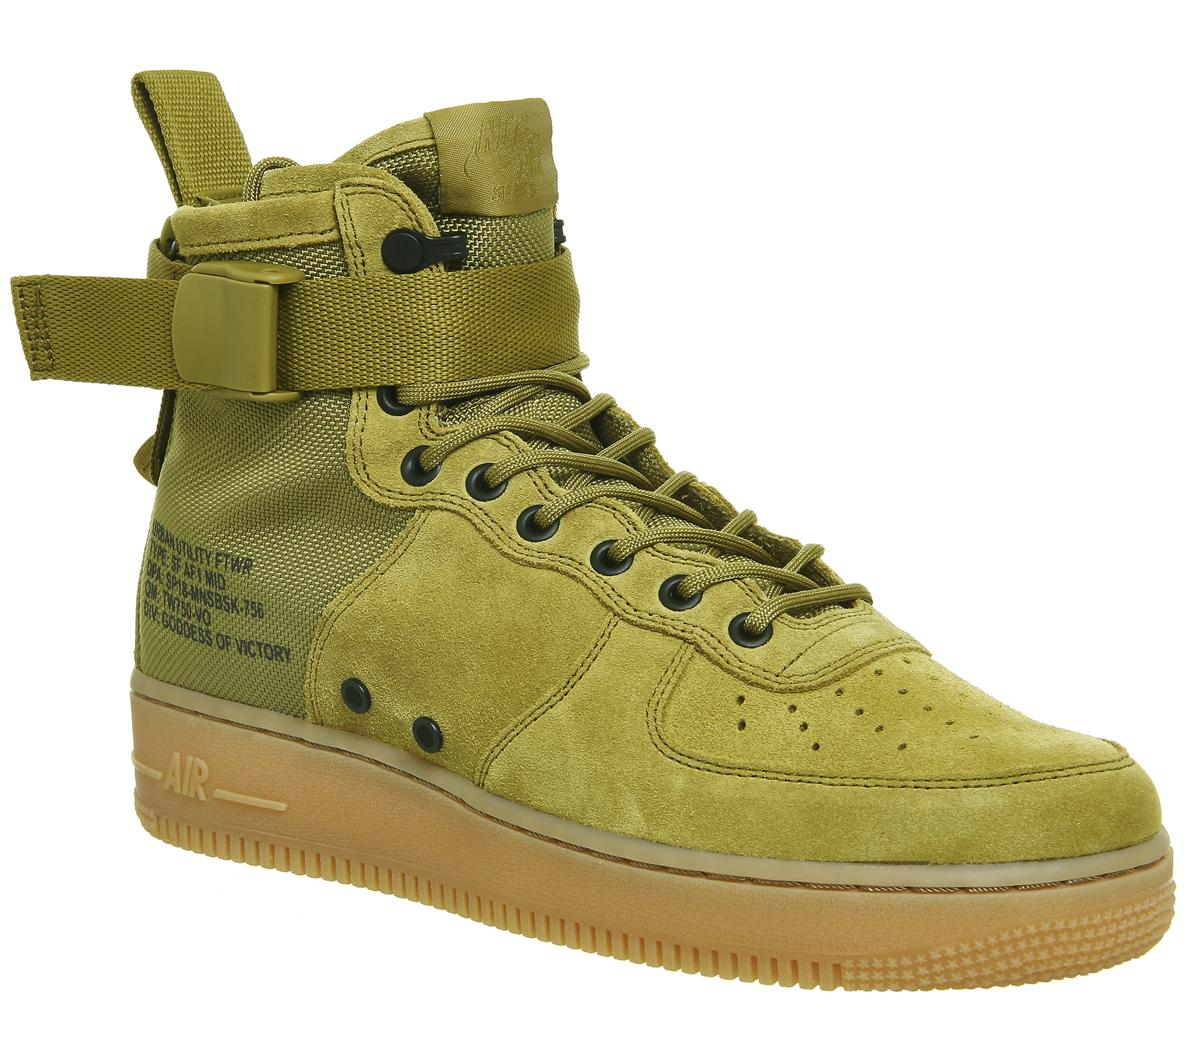 Nike Sf Af1 Mid 17 Trainers Desert Moss